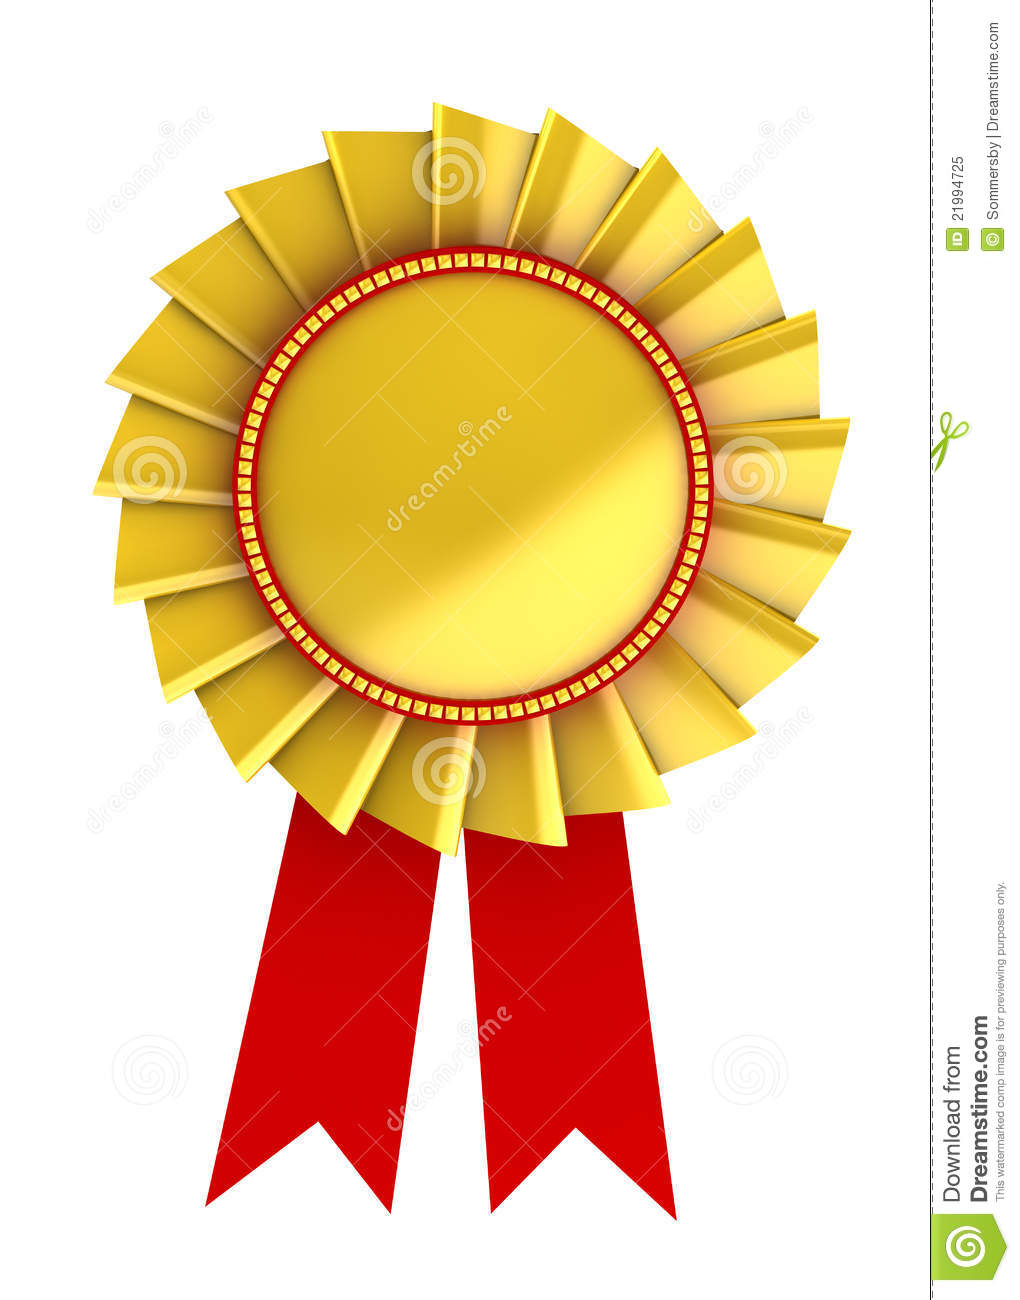 3d Illustration Of Golden Award Royalty Free Stock Photo